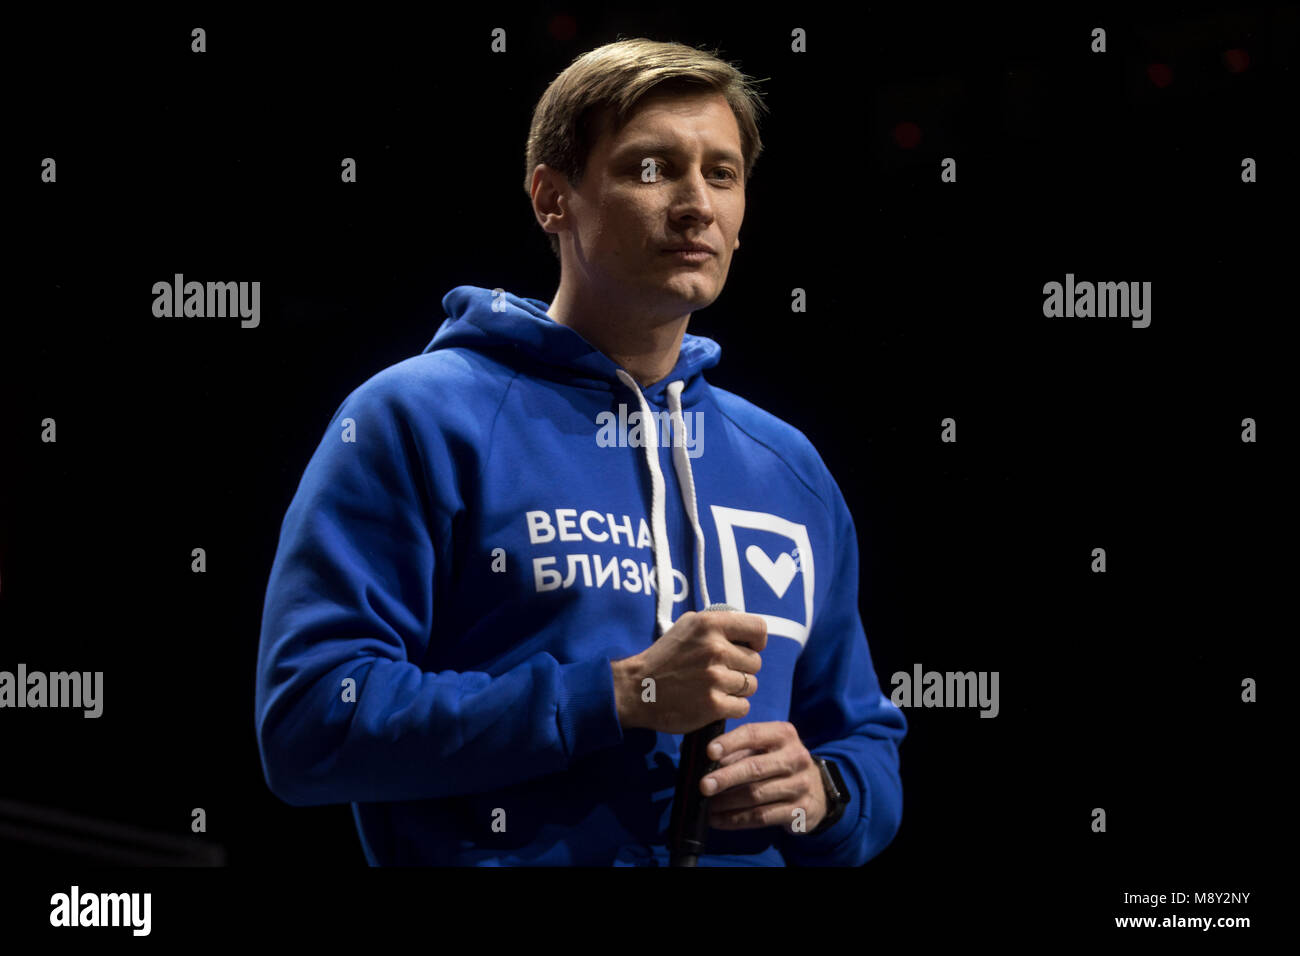 Russian opposition politician Dmitry Gudkov during during the announcement of the creation of a new political party - Stock Image